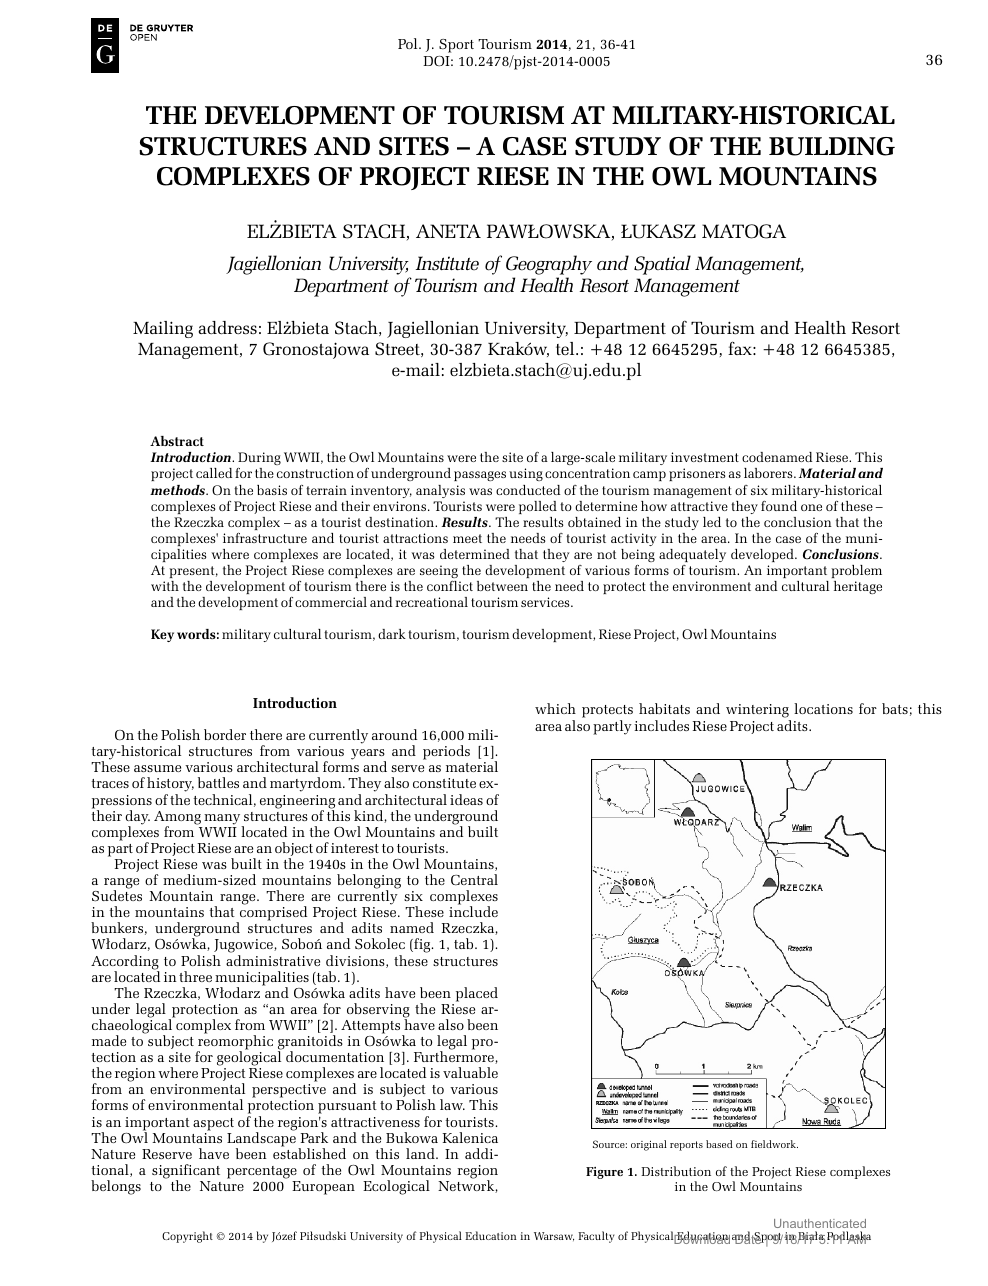 The Development of Tourism at Military-Historical Structures and